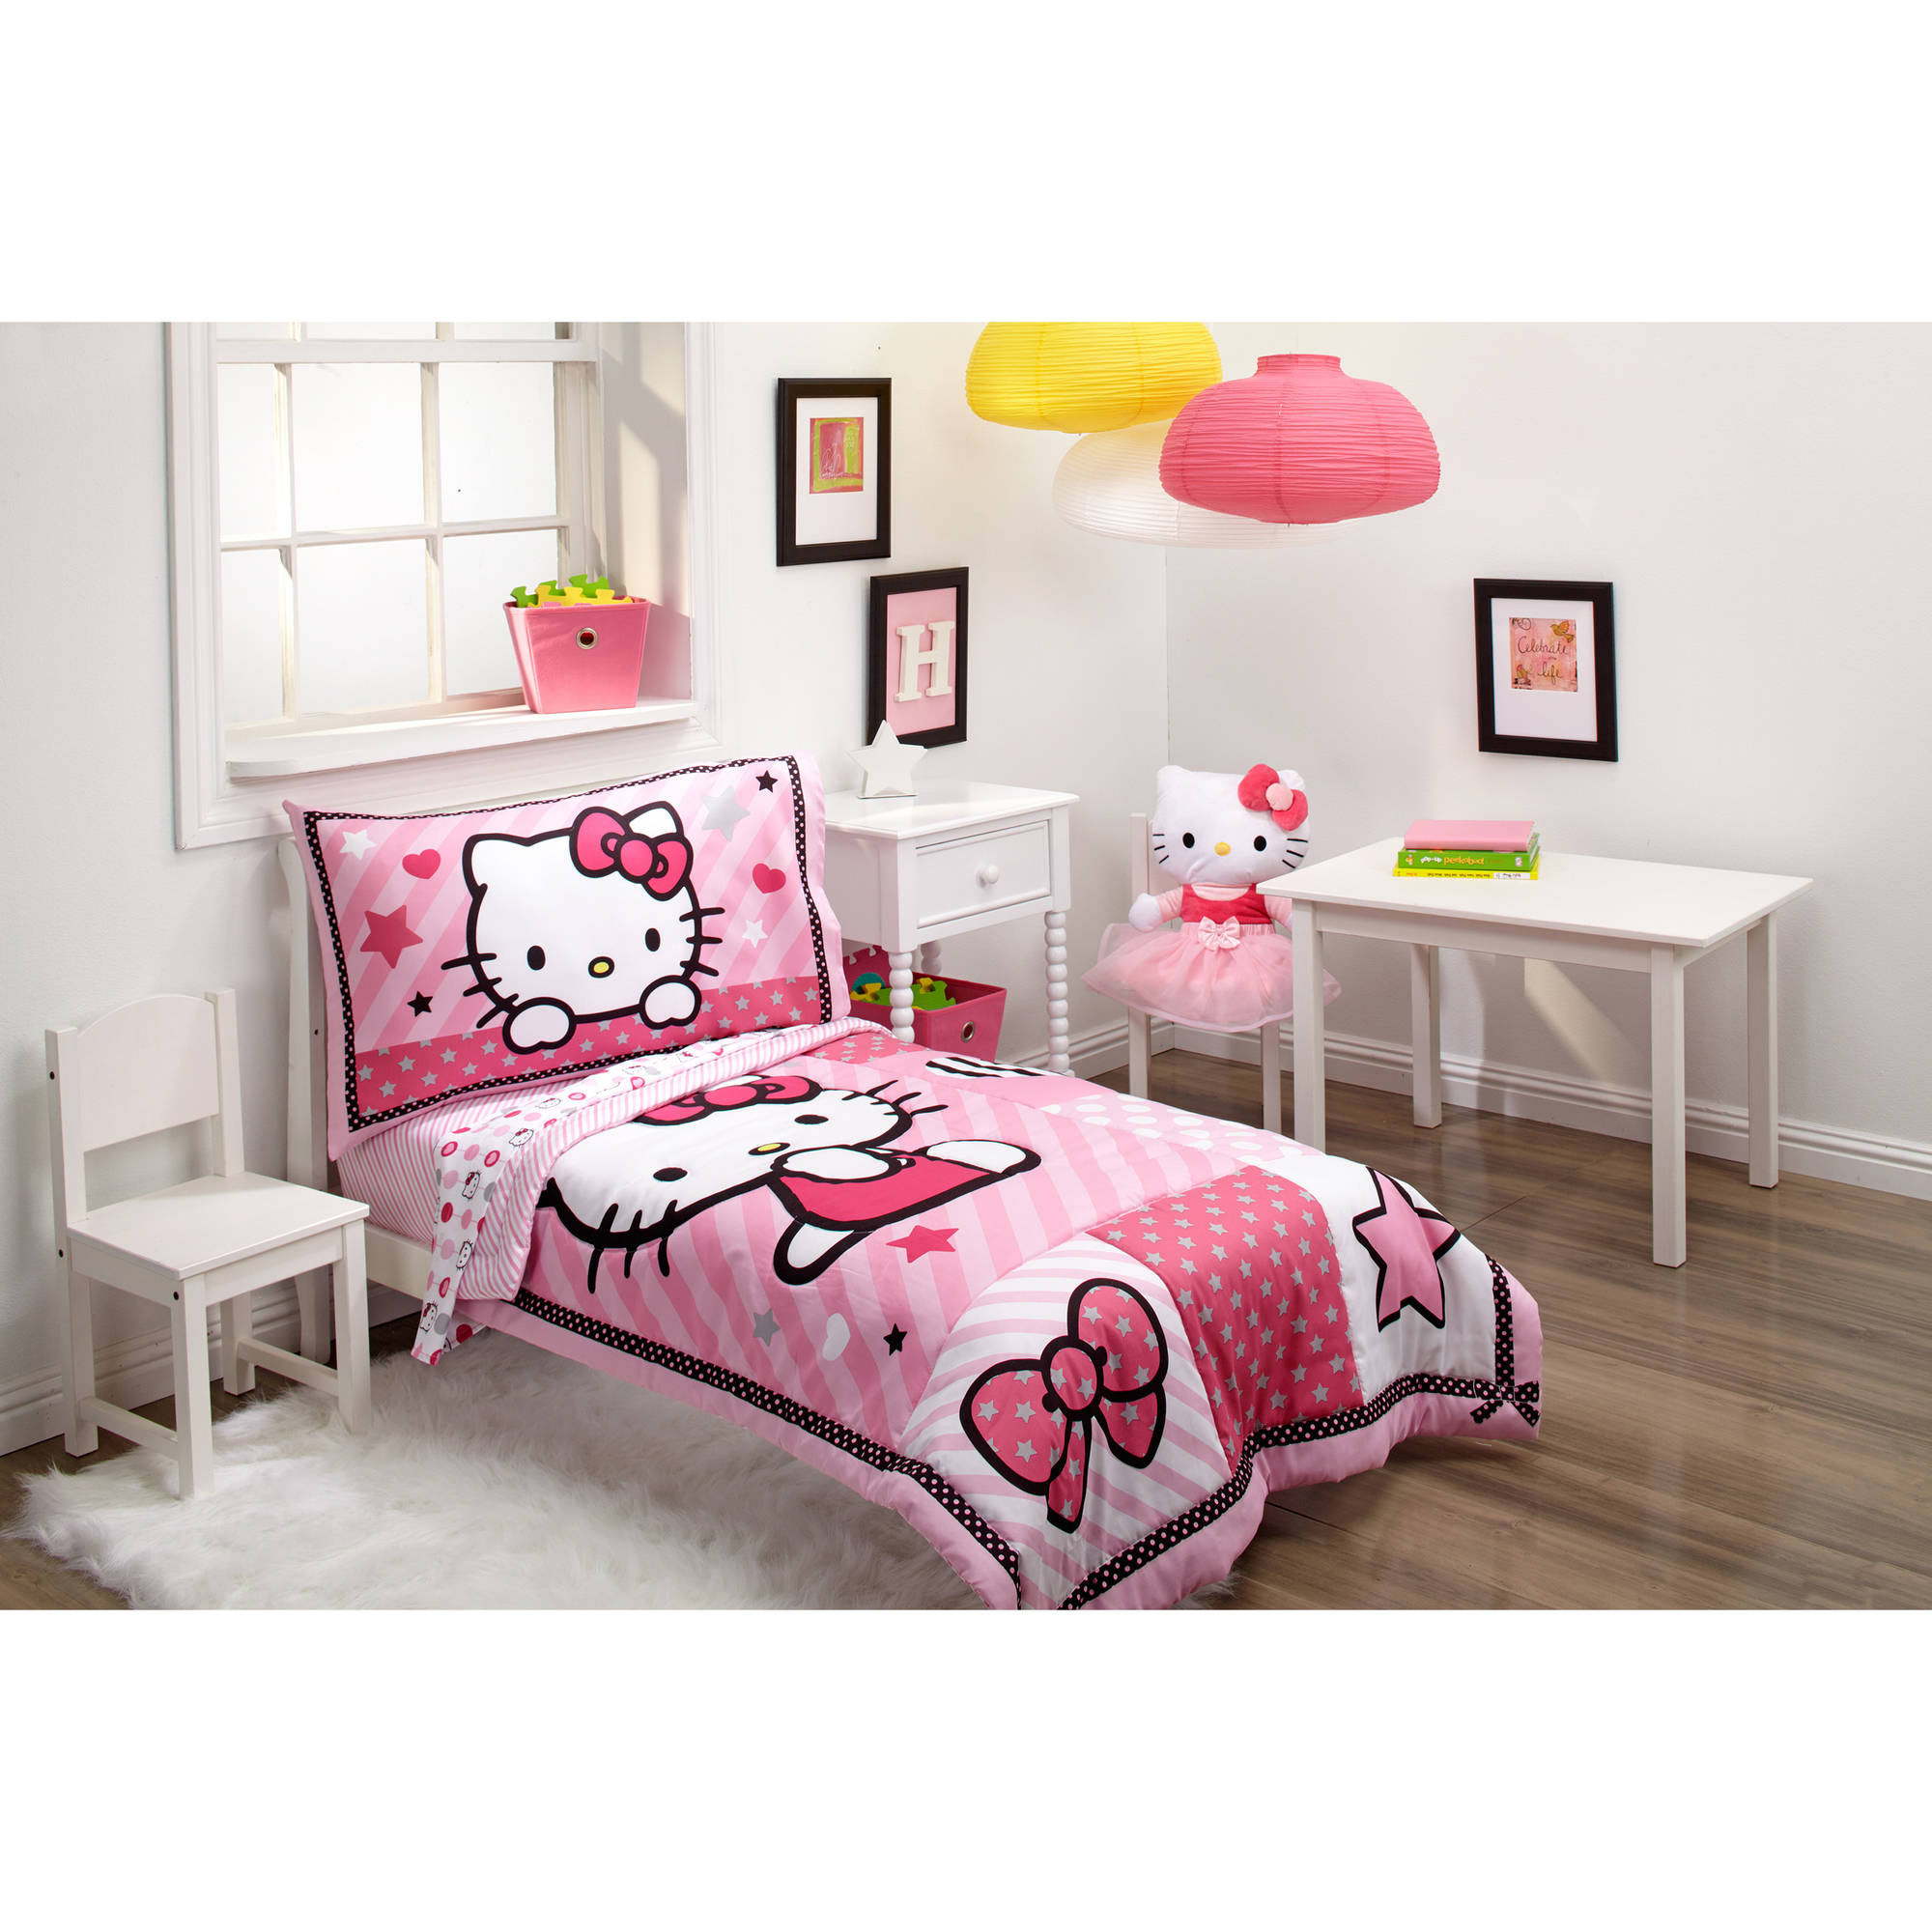 Hello Kitty Sweetheart 3 - Piece Toddler Bedding Set with BONUS Matching Pillow Case